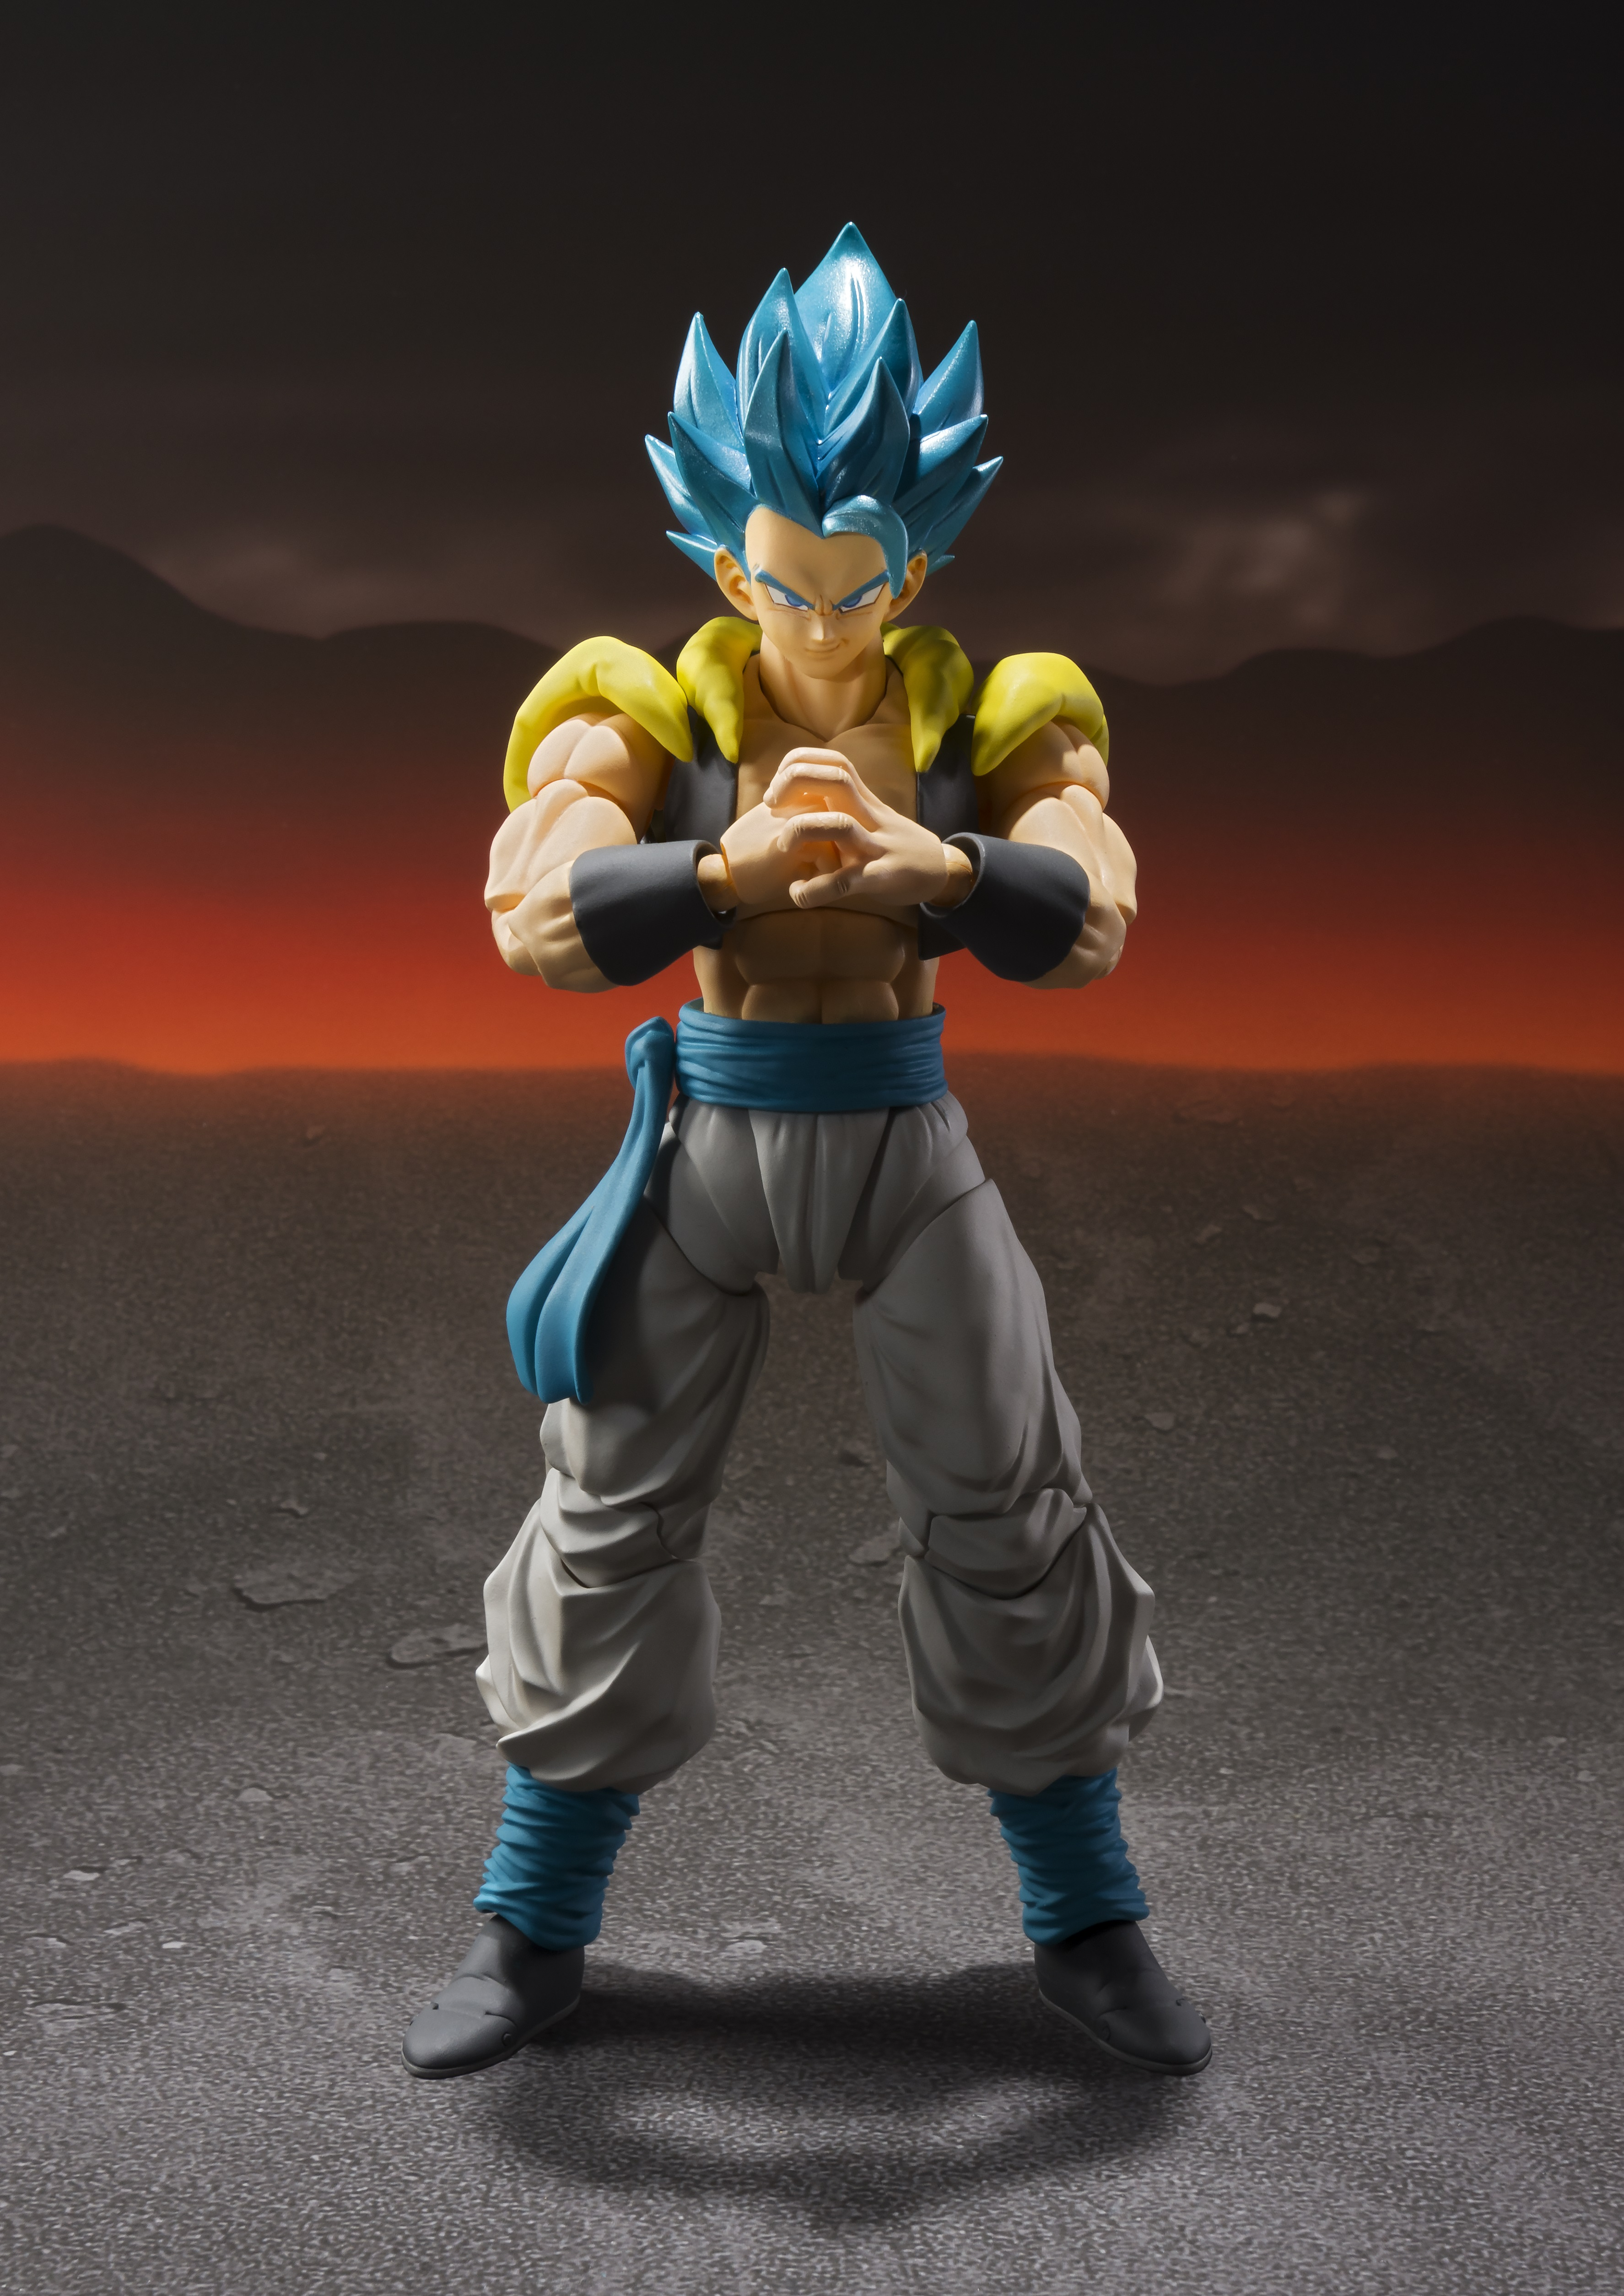 Figuarts Dragon Ball Z DBZ Super Saiyan God Gogeta Action Figure Bandai S.H